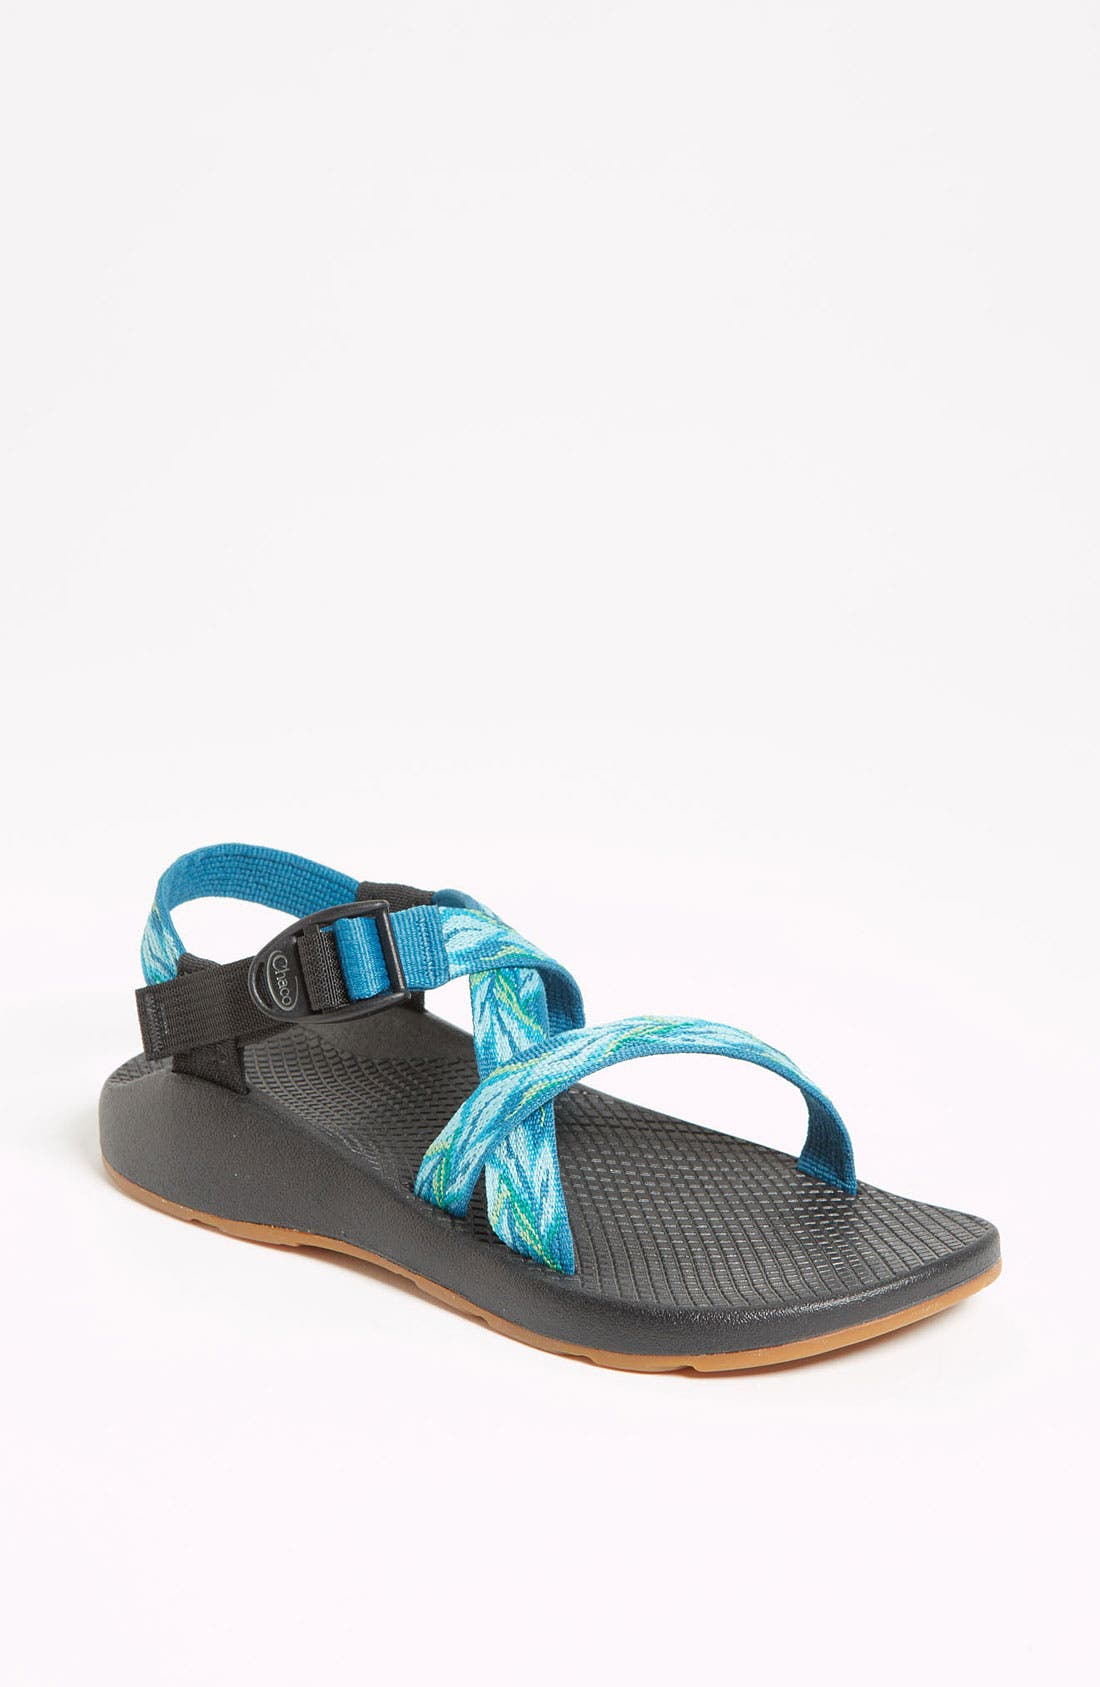 Alternate Image 1 Selected - Chaco 'ZX2 Yampa' Sandal